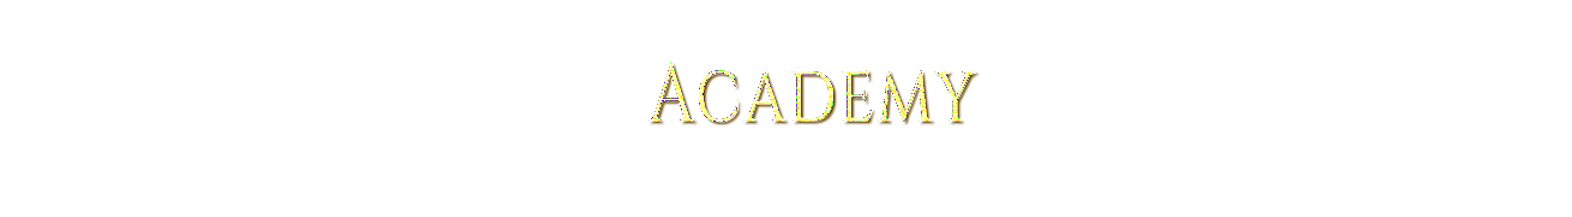 Academy-Recovered_edited_edited.png